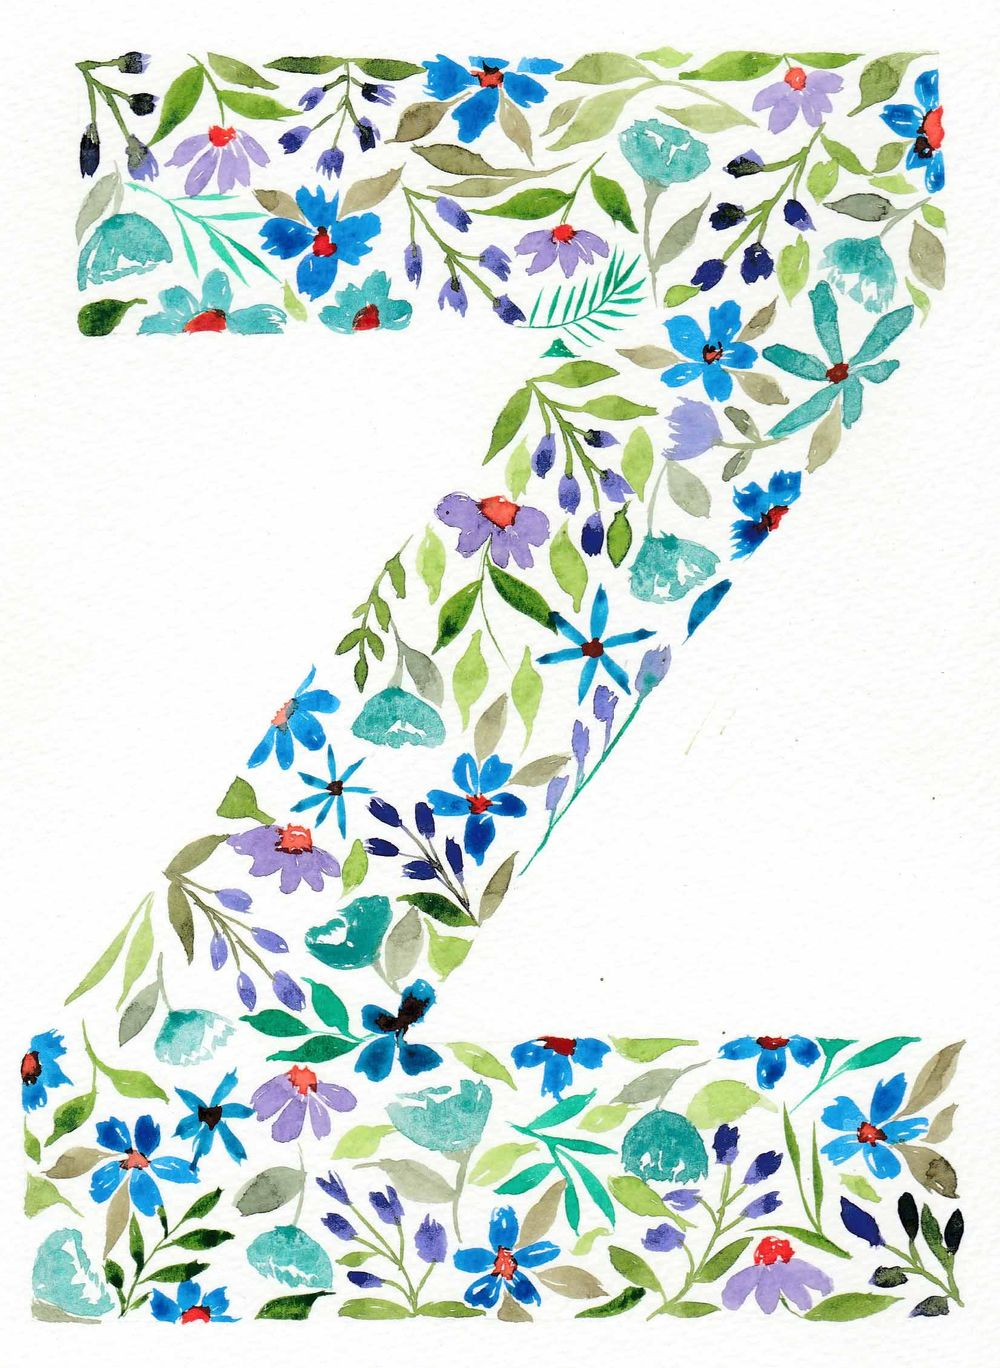 Letter Z - image 1 - student project